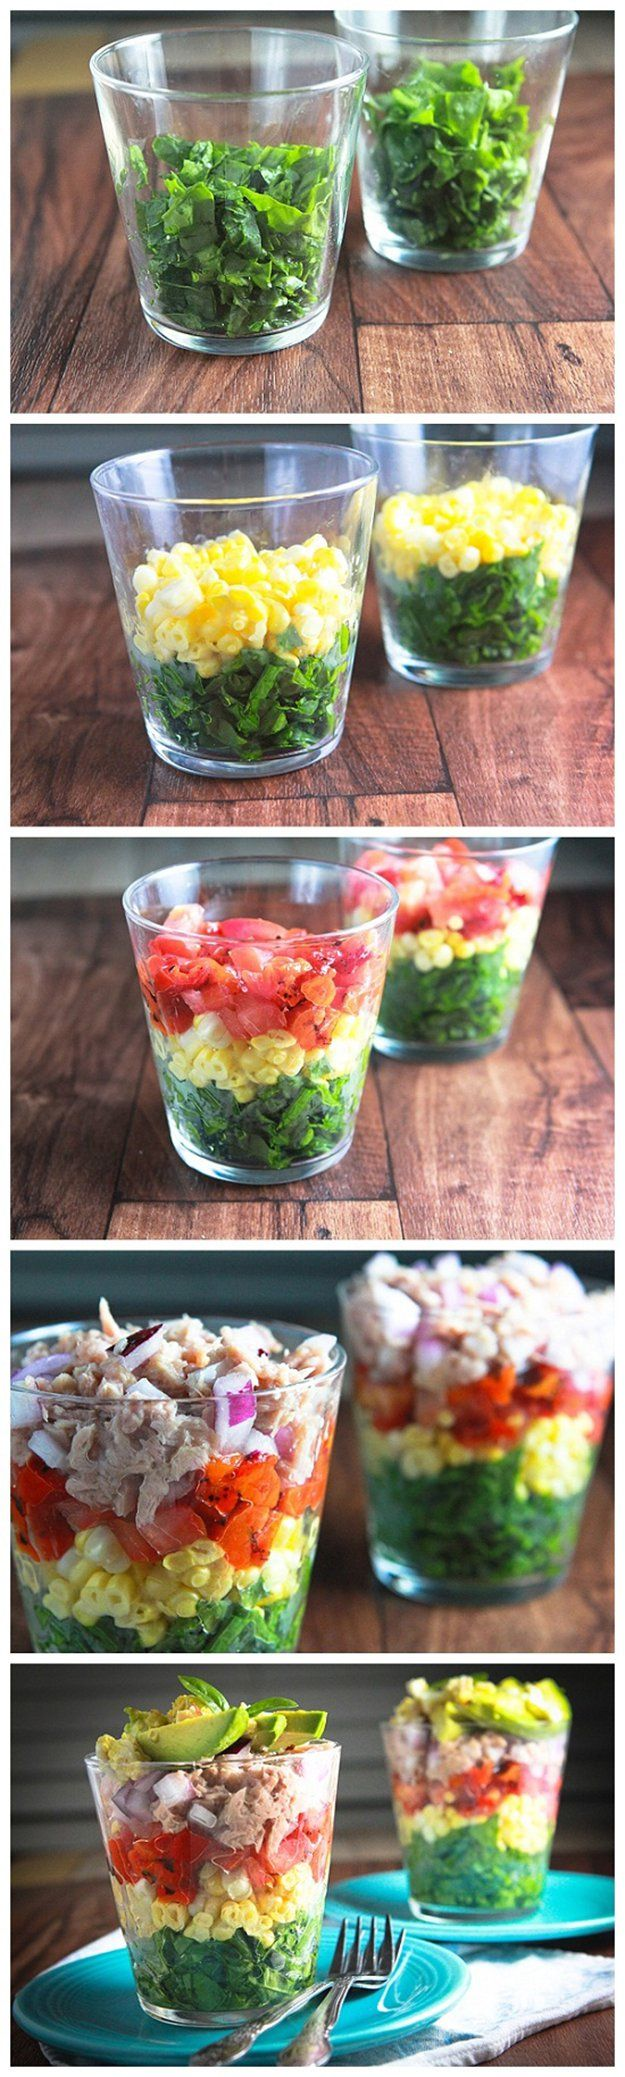 41 best picnic ideas images on pinterest yummy food cooking 25 fall diy picnic food ideas and crafts to do this weekend forumfinder Gallery